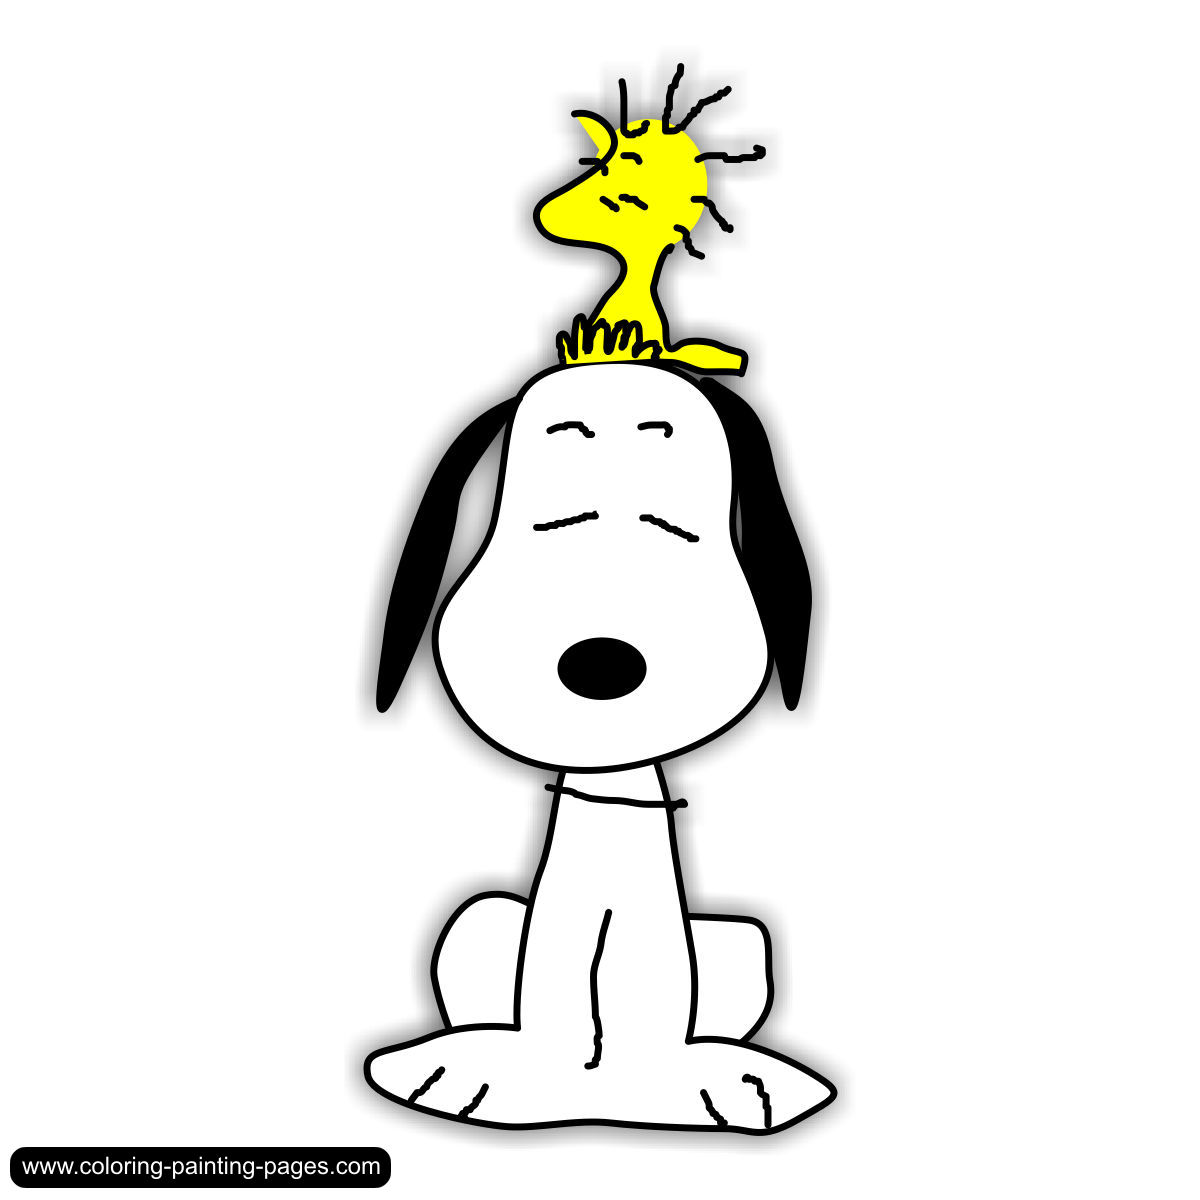 Snoopy clipart 20 free Cliparts